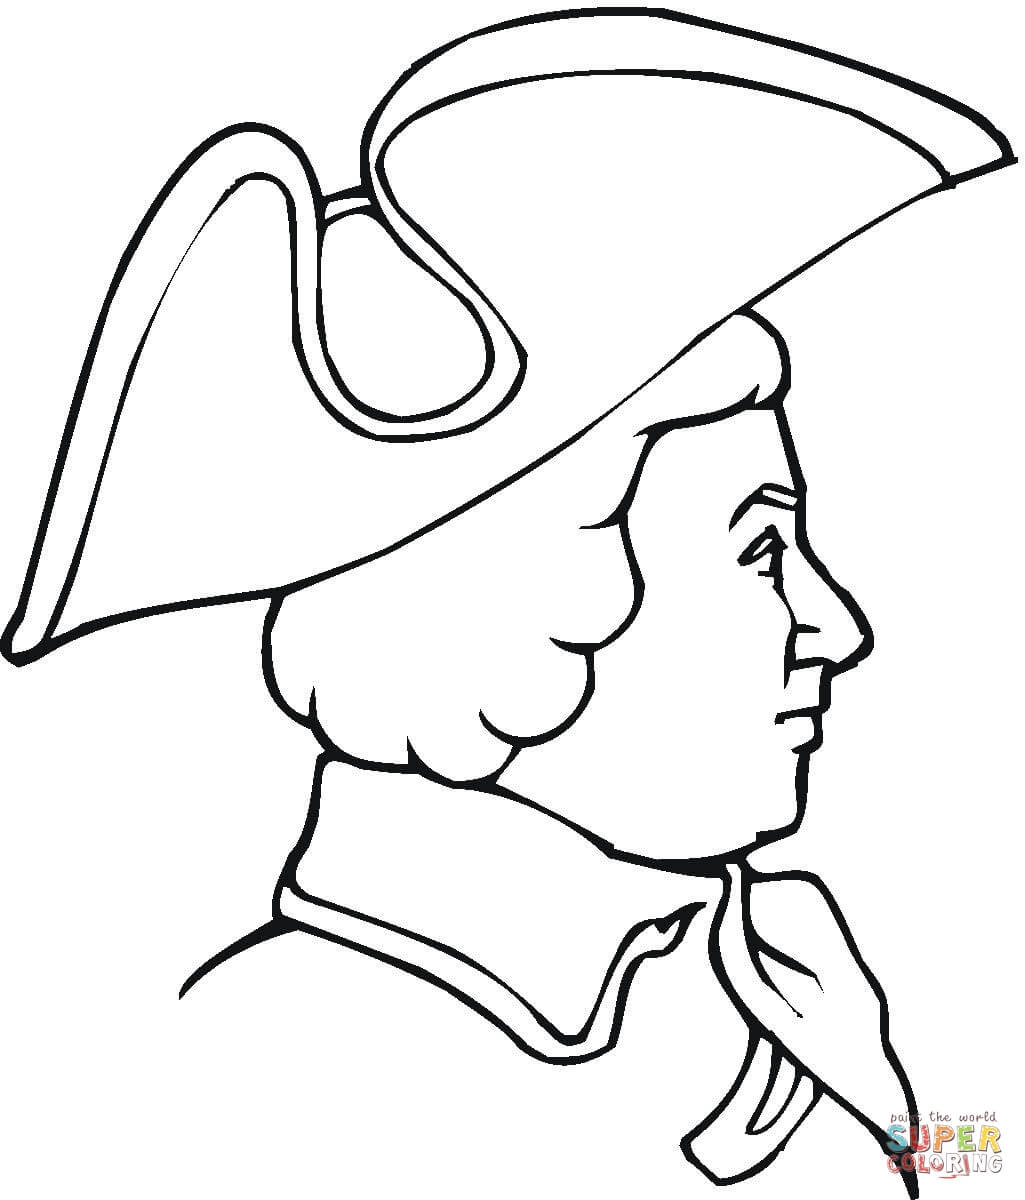 The American Revolution Coloring Page